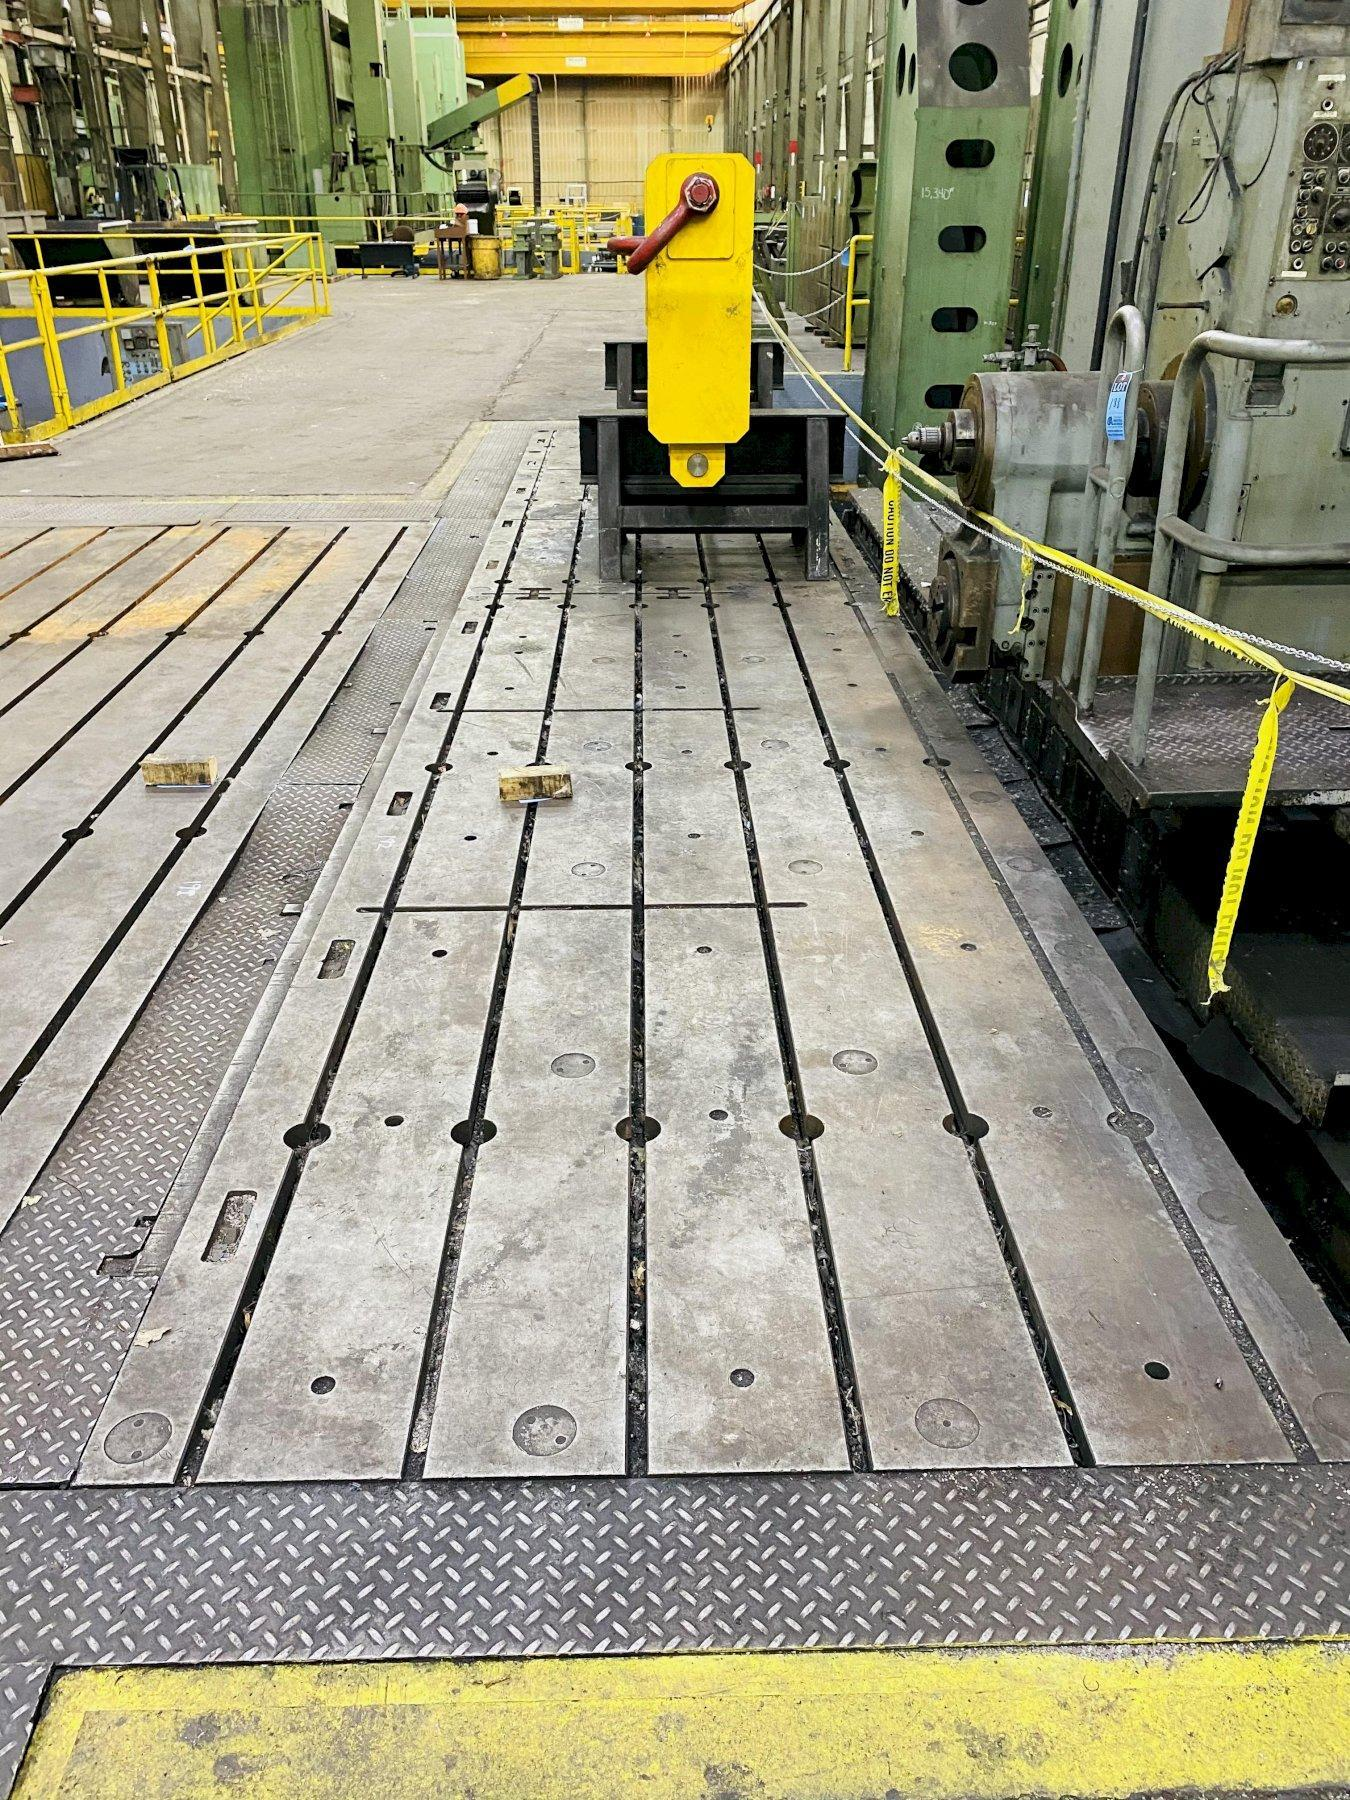 """72"""" X 360""""  X 12"""" GIDDINGS & LEWIS T SLOTTED FLOOR PLATES. STOCK # 0310221"""